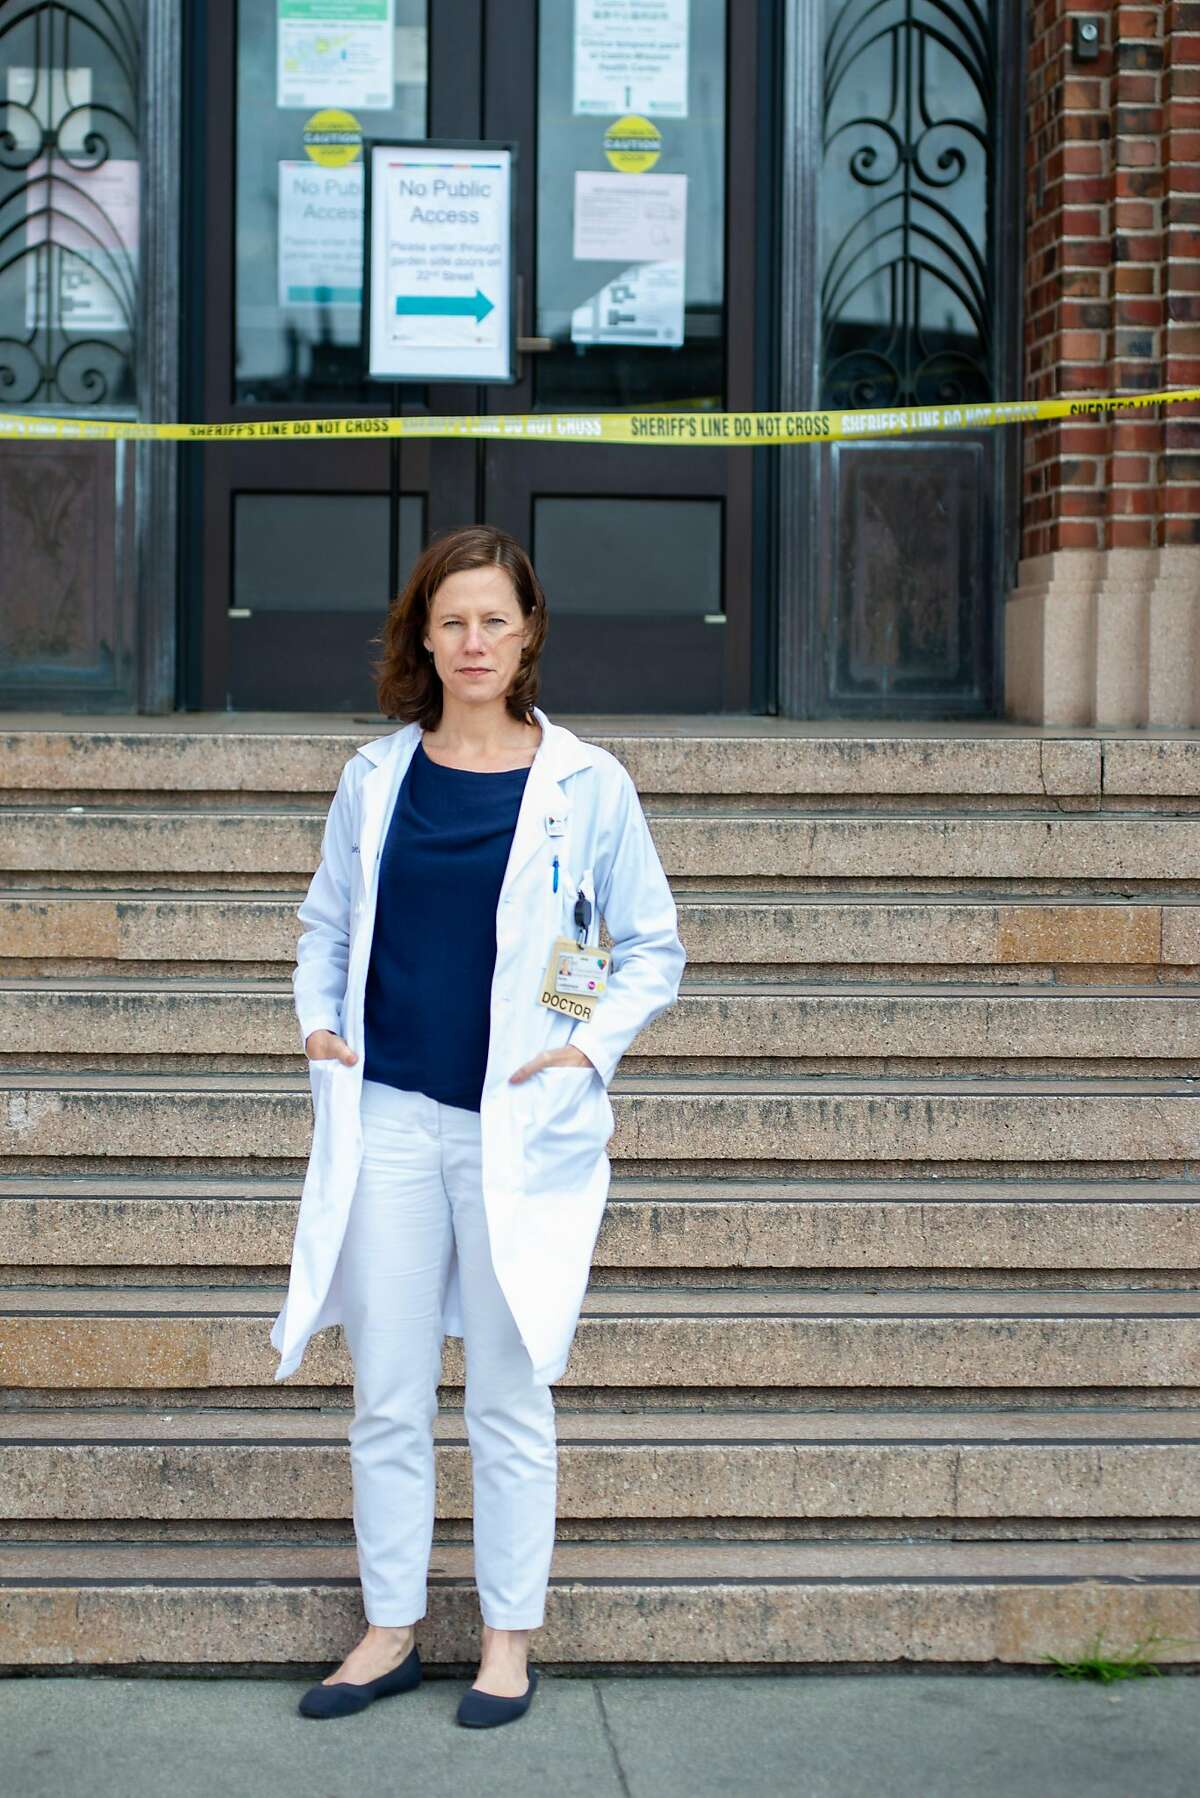 Dr. Annie Luetkemeyer is leading a study of a drug that may work like Tamiflu for COVID-19.